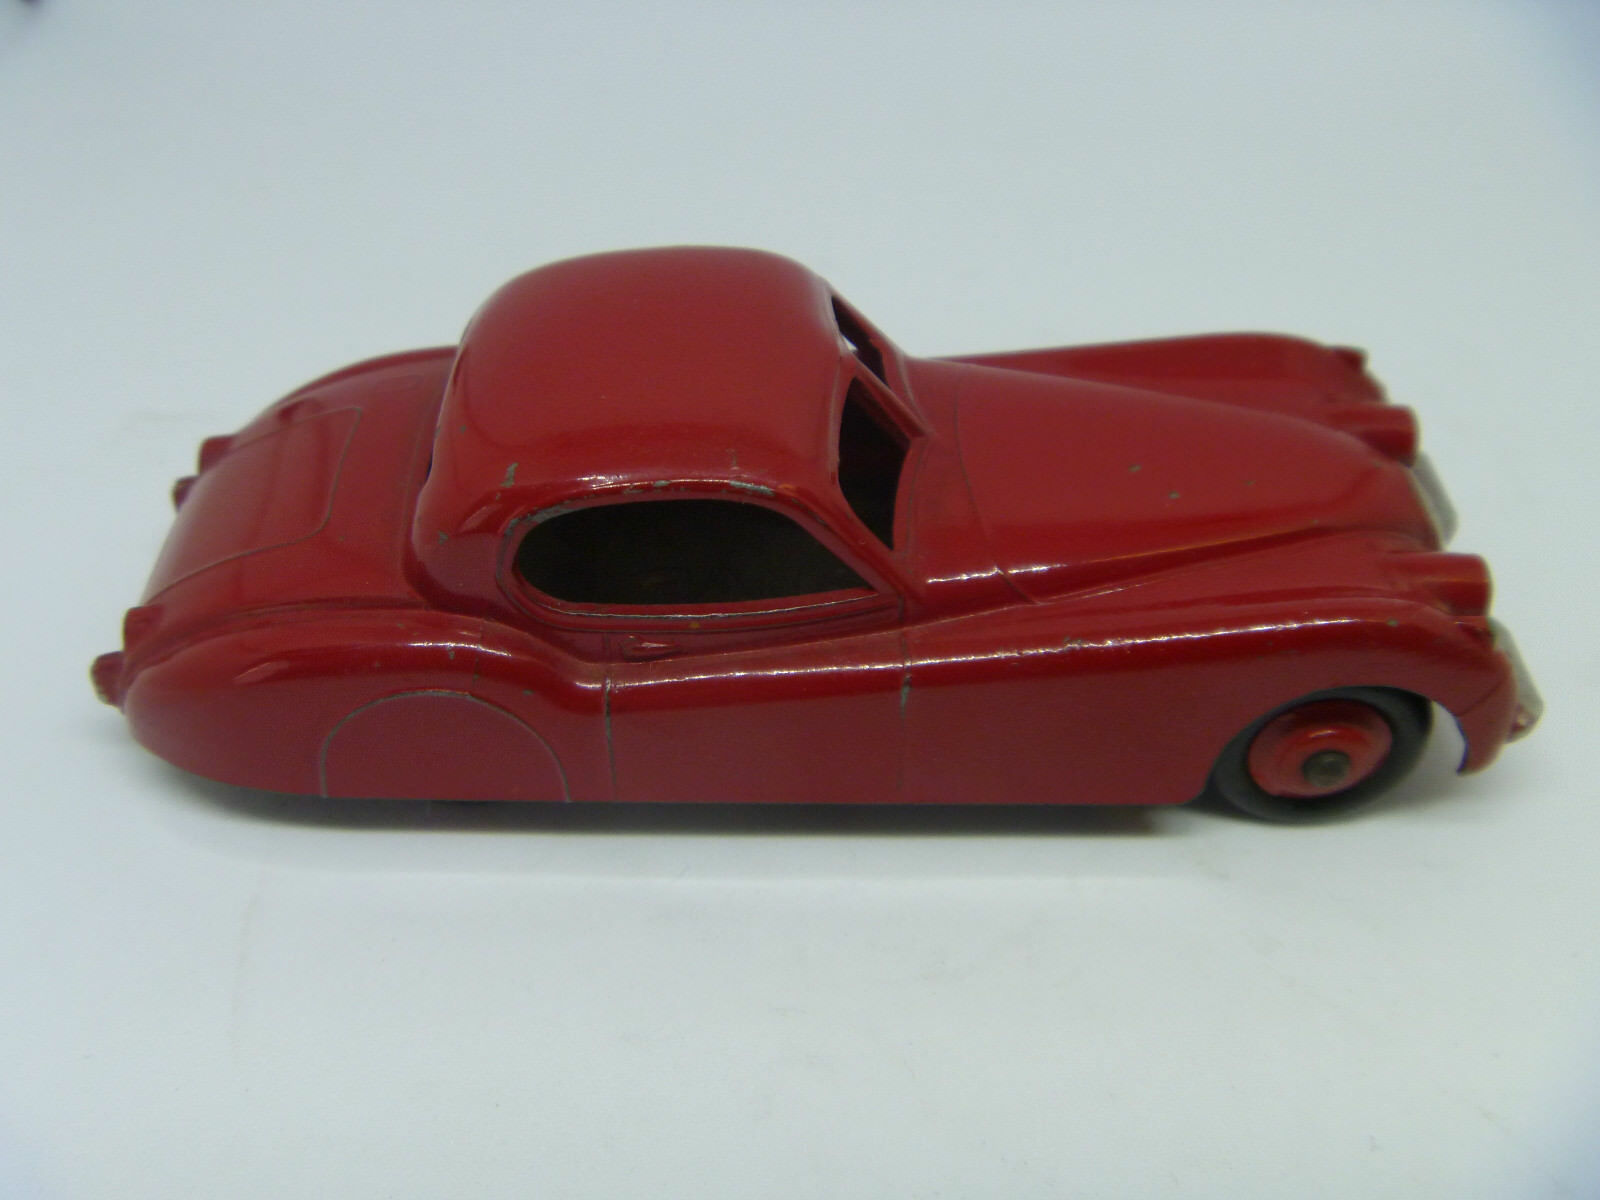 DINKY TOYS 157 JAGUAR XK120 COUPE COUPE COUPE RED NEAR MINT ORIGINAL 74b9dd